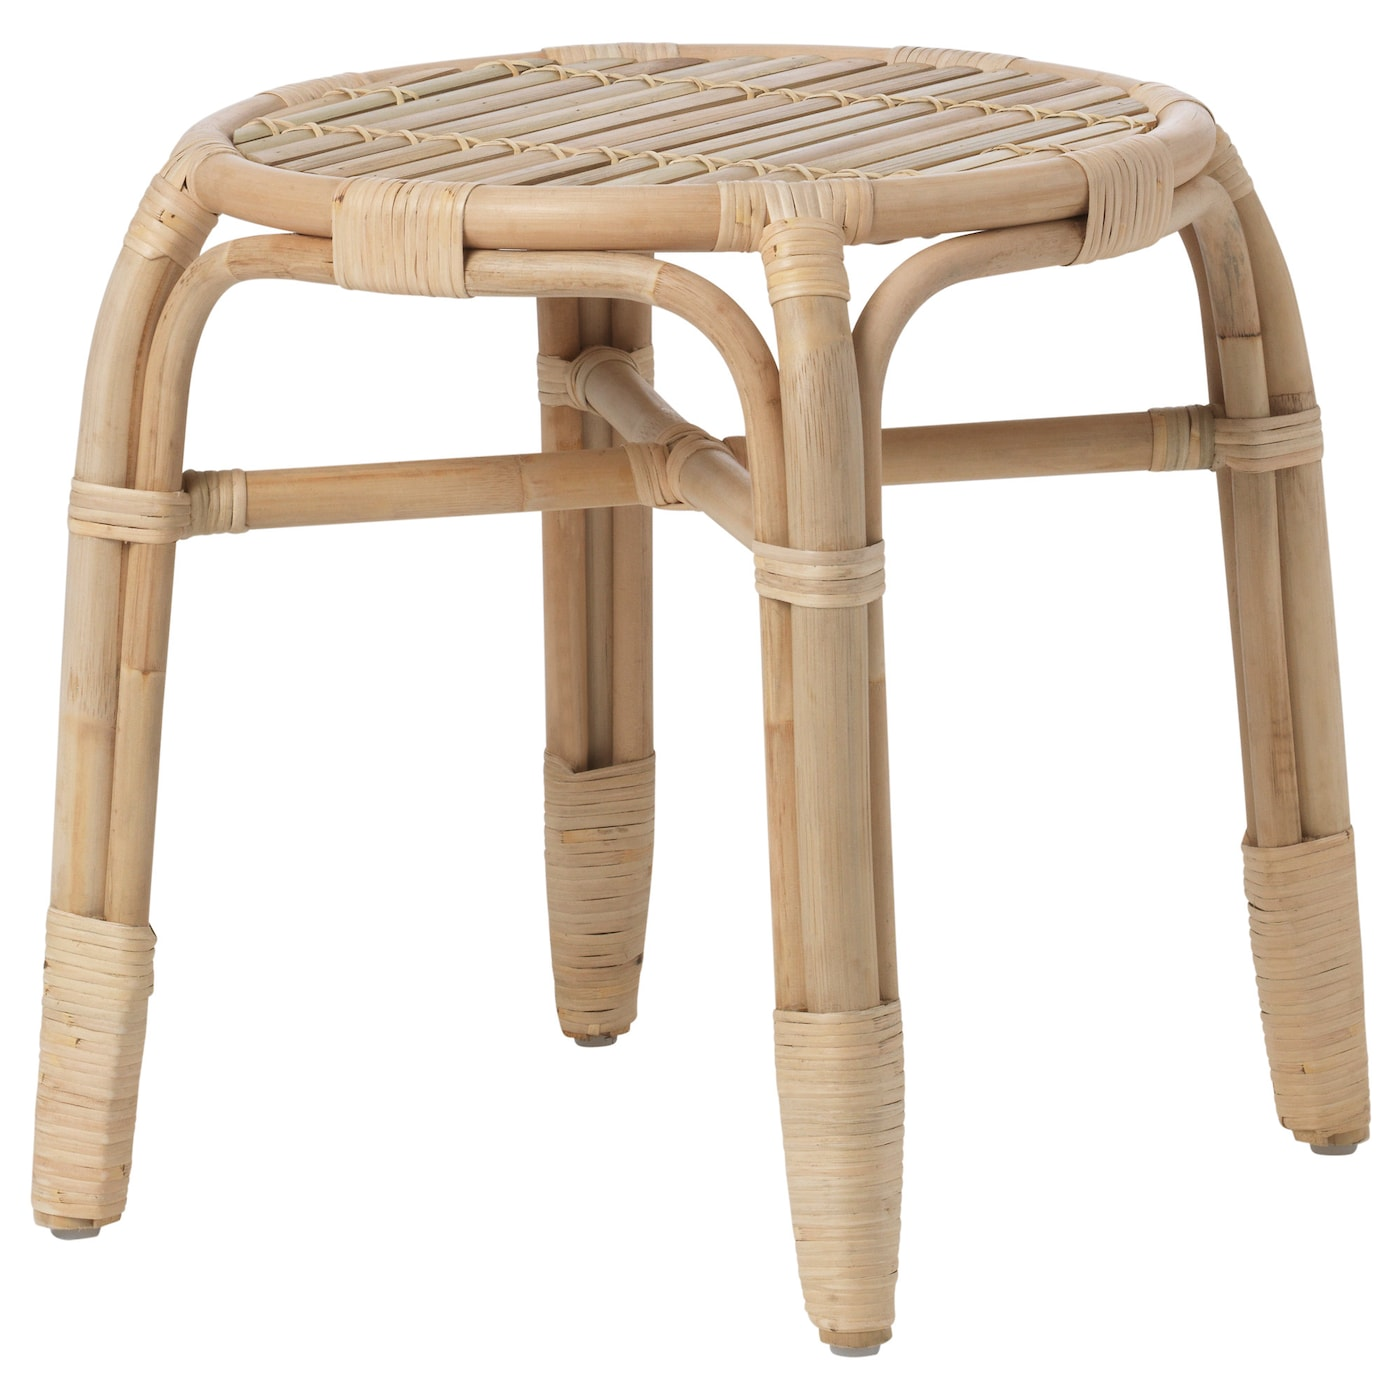 IKEA MASTHOLMEN side table Handmade by skilled craftspeople, which makes every product unique.